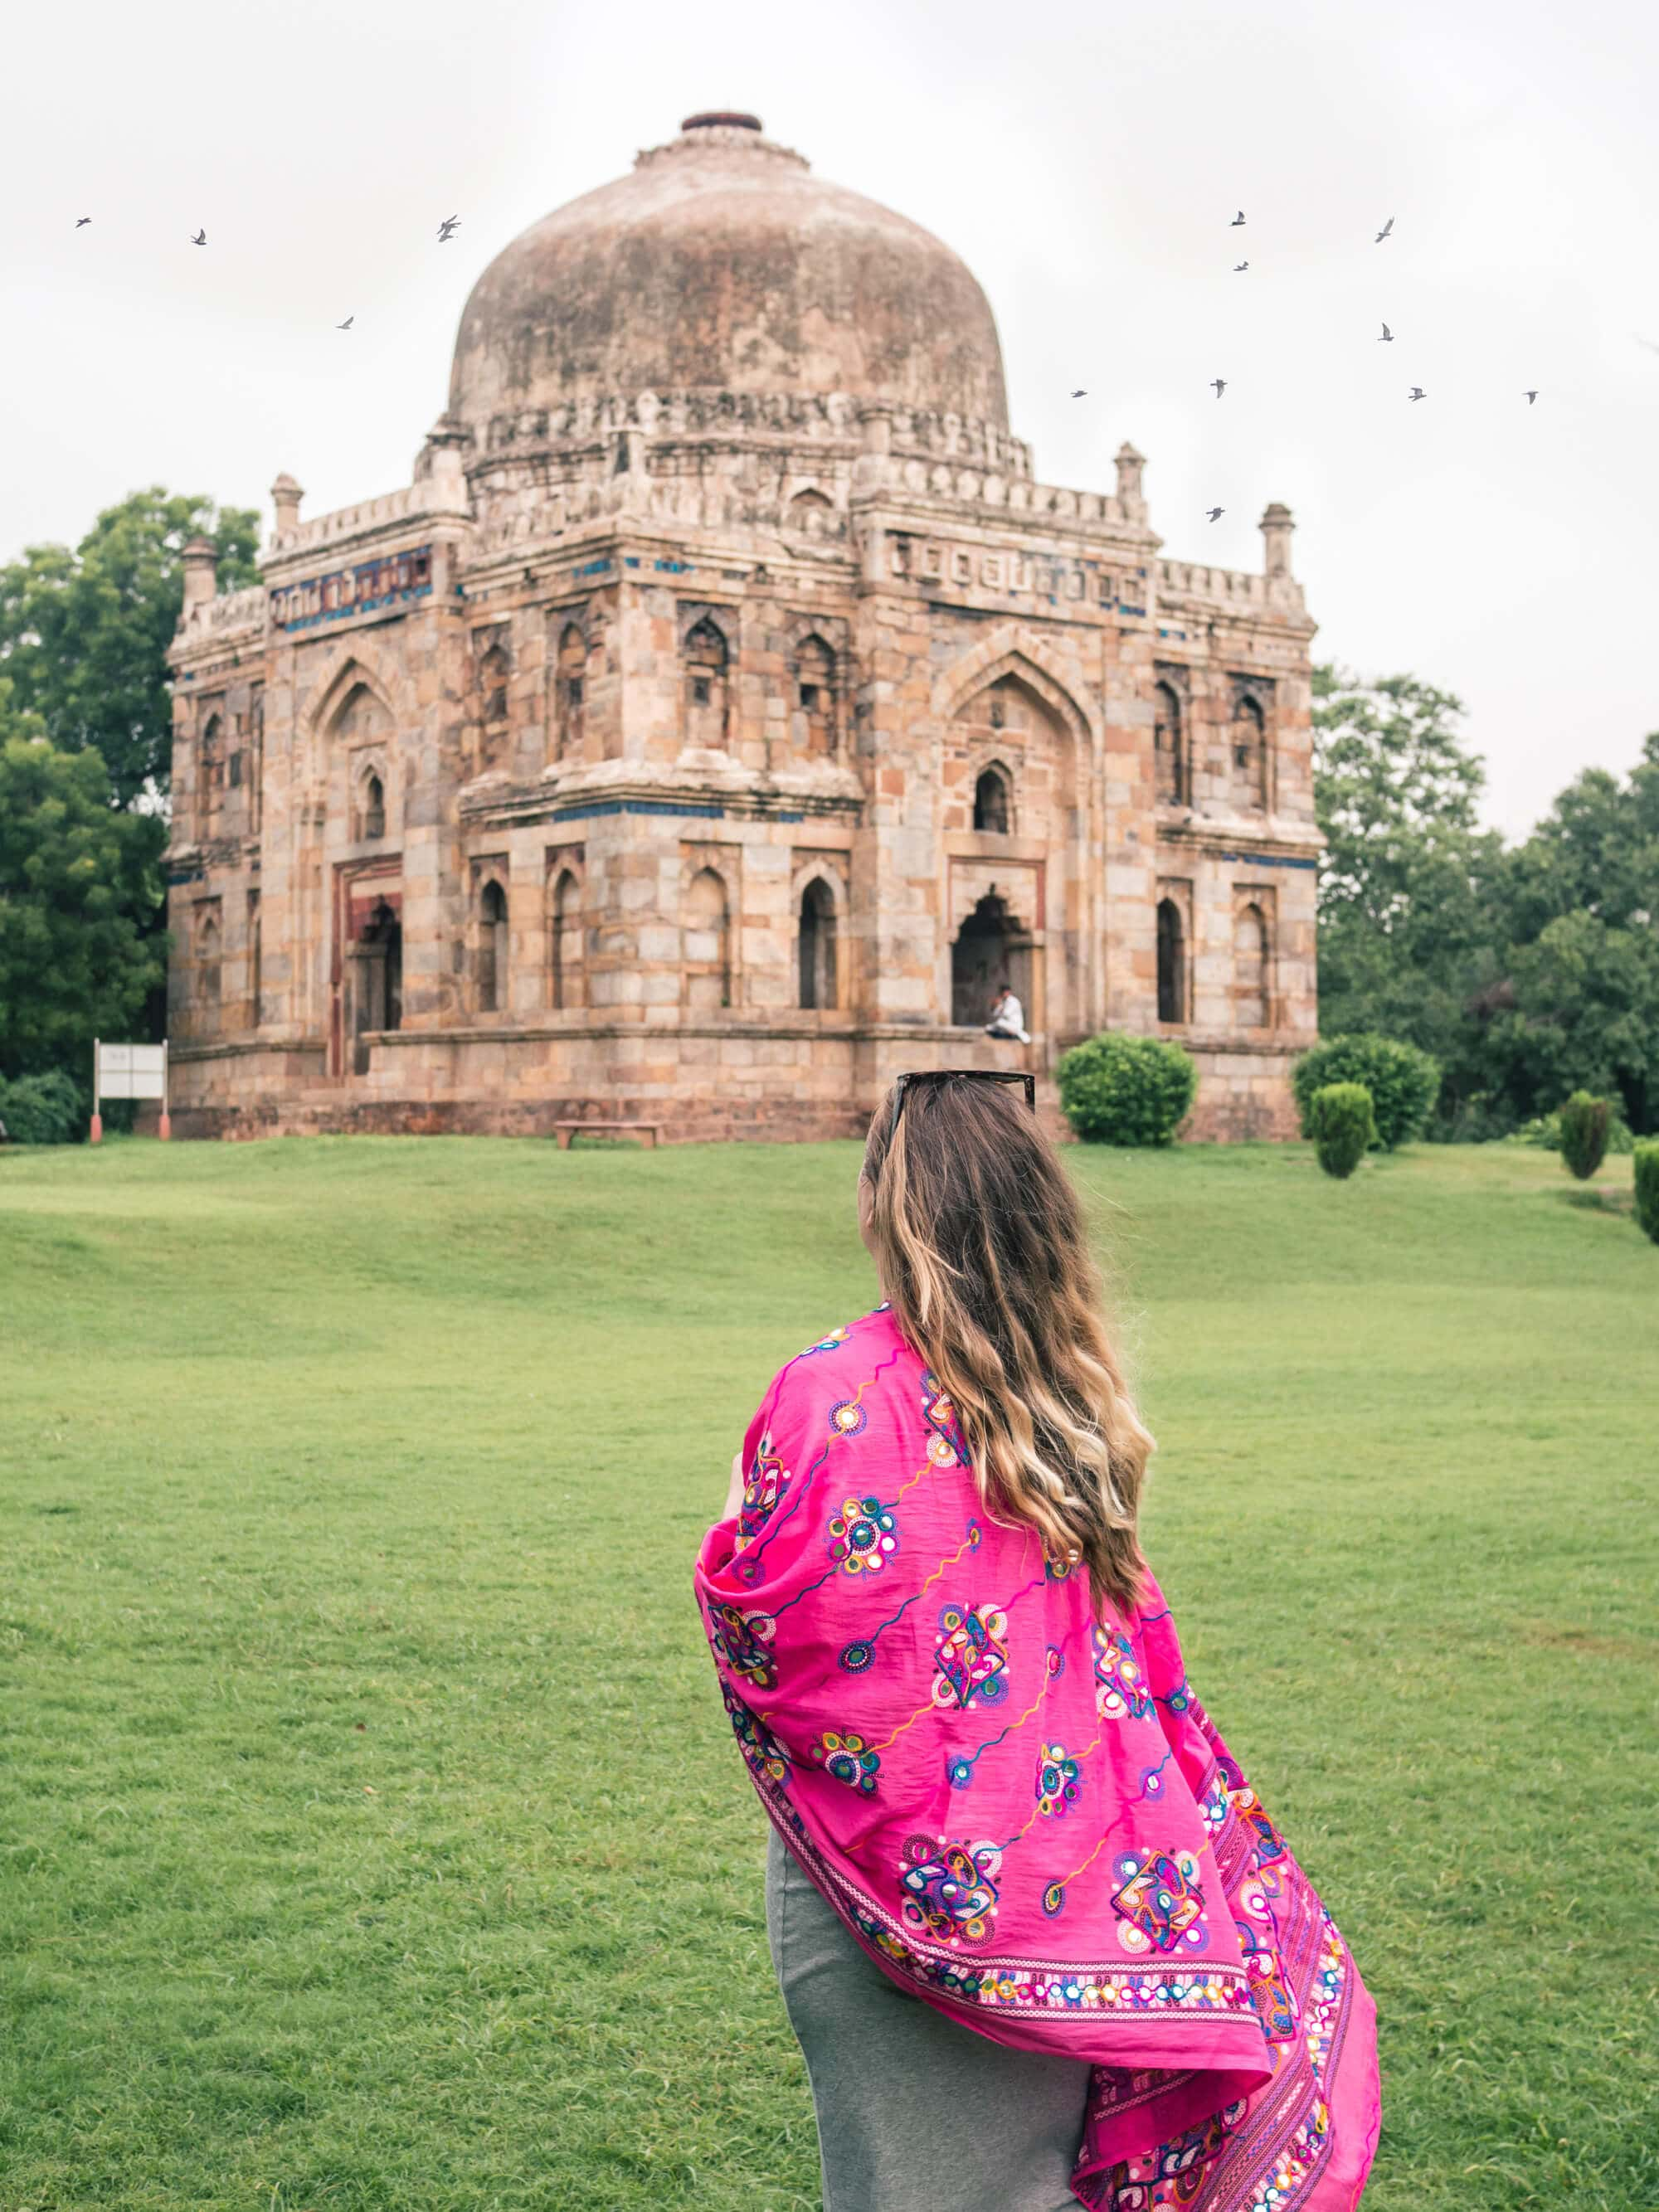 A first timer's guide to Delhi, India - The stunning and peaceful Lodhi Gardens